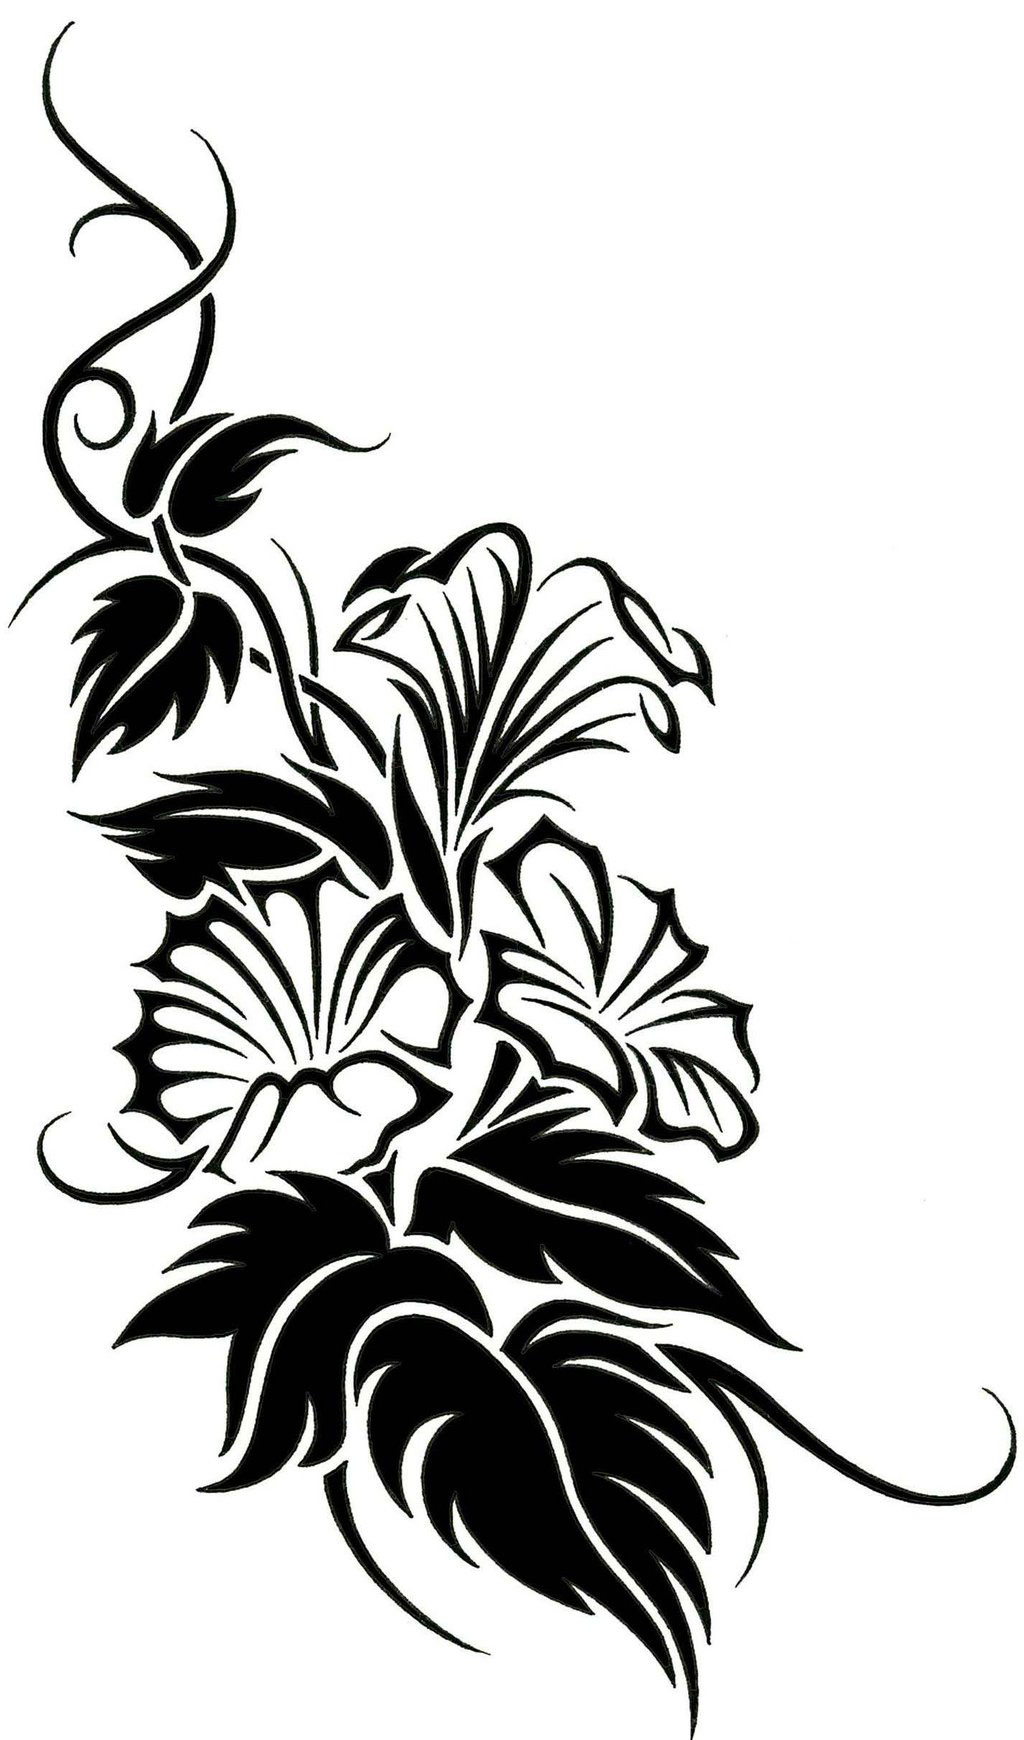 rose vine drawing designs clipart best